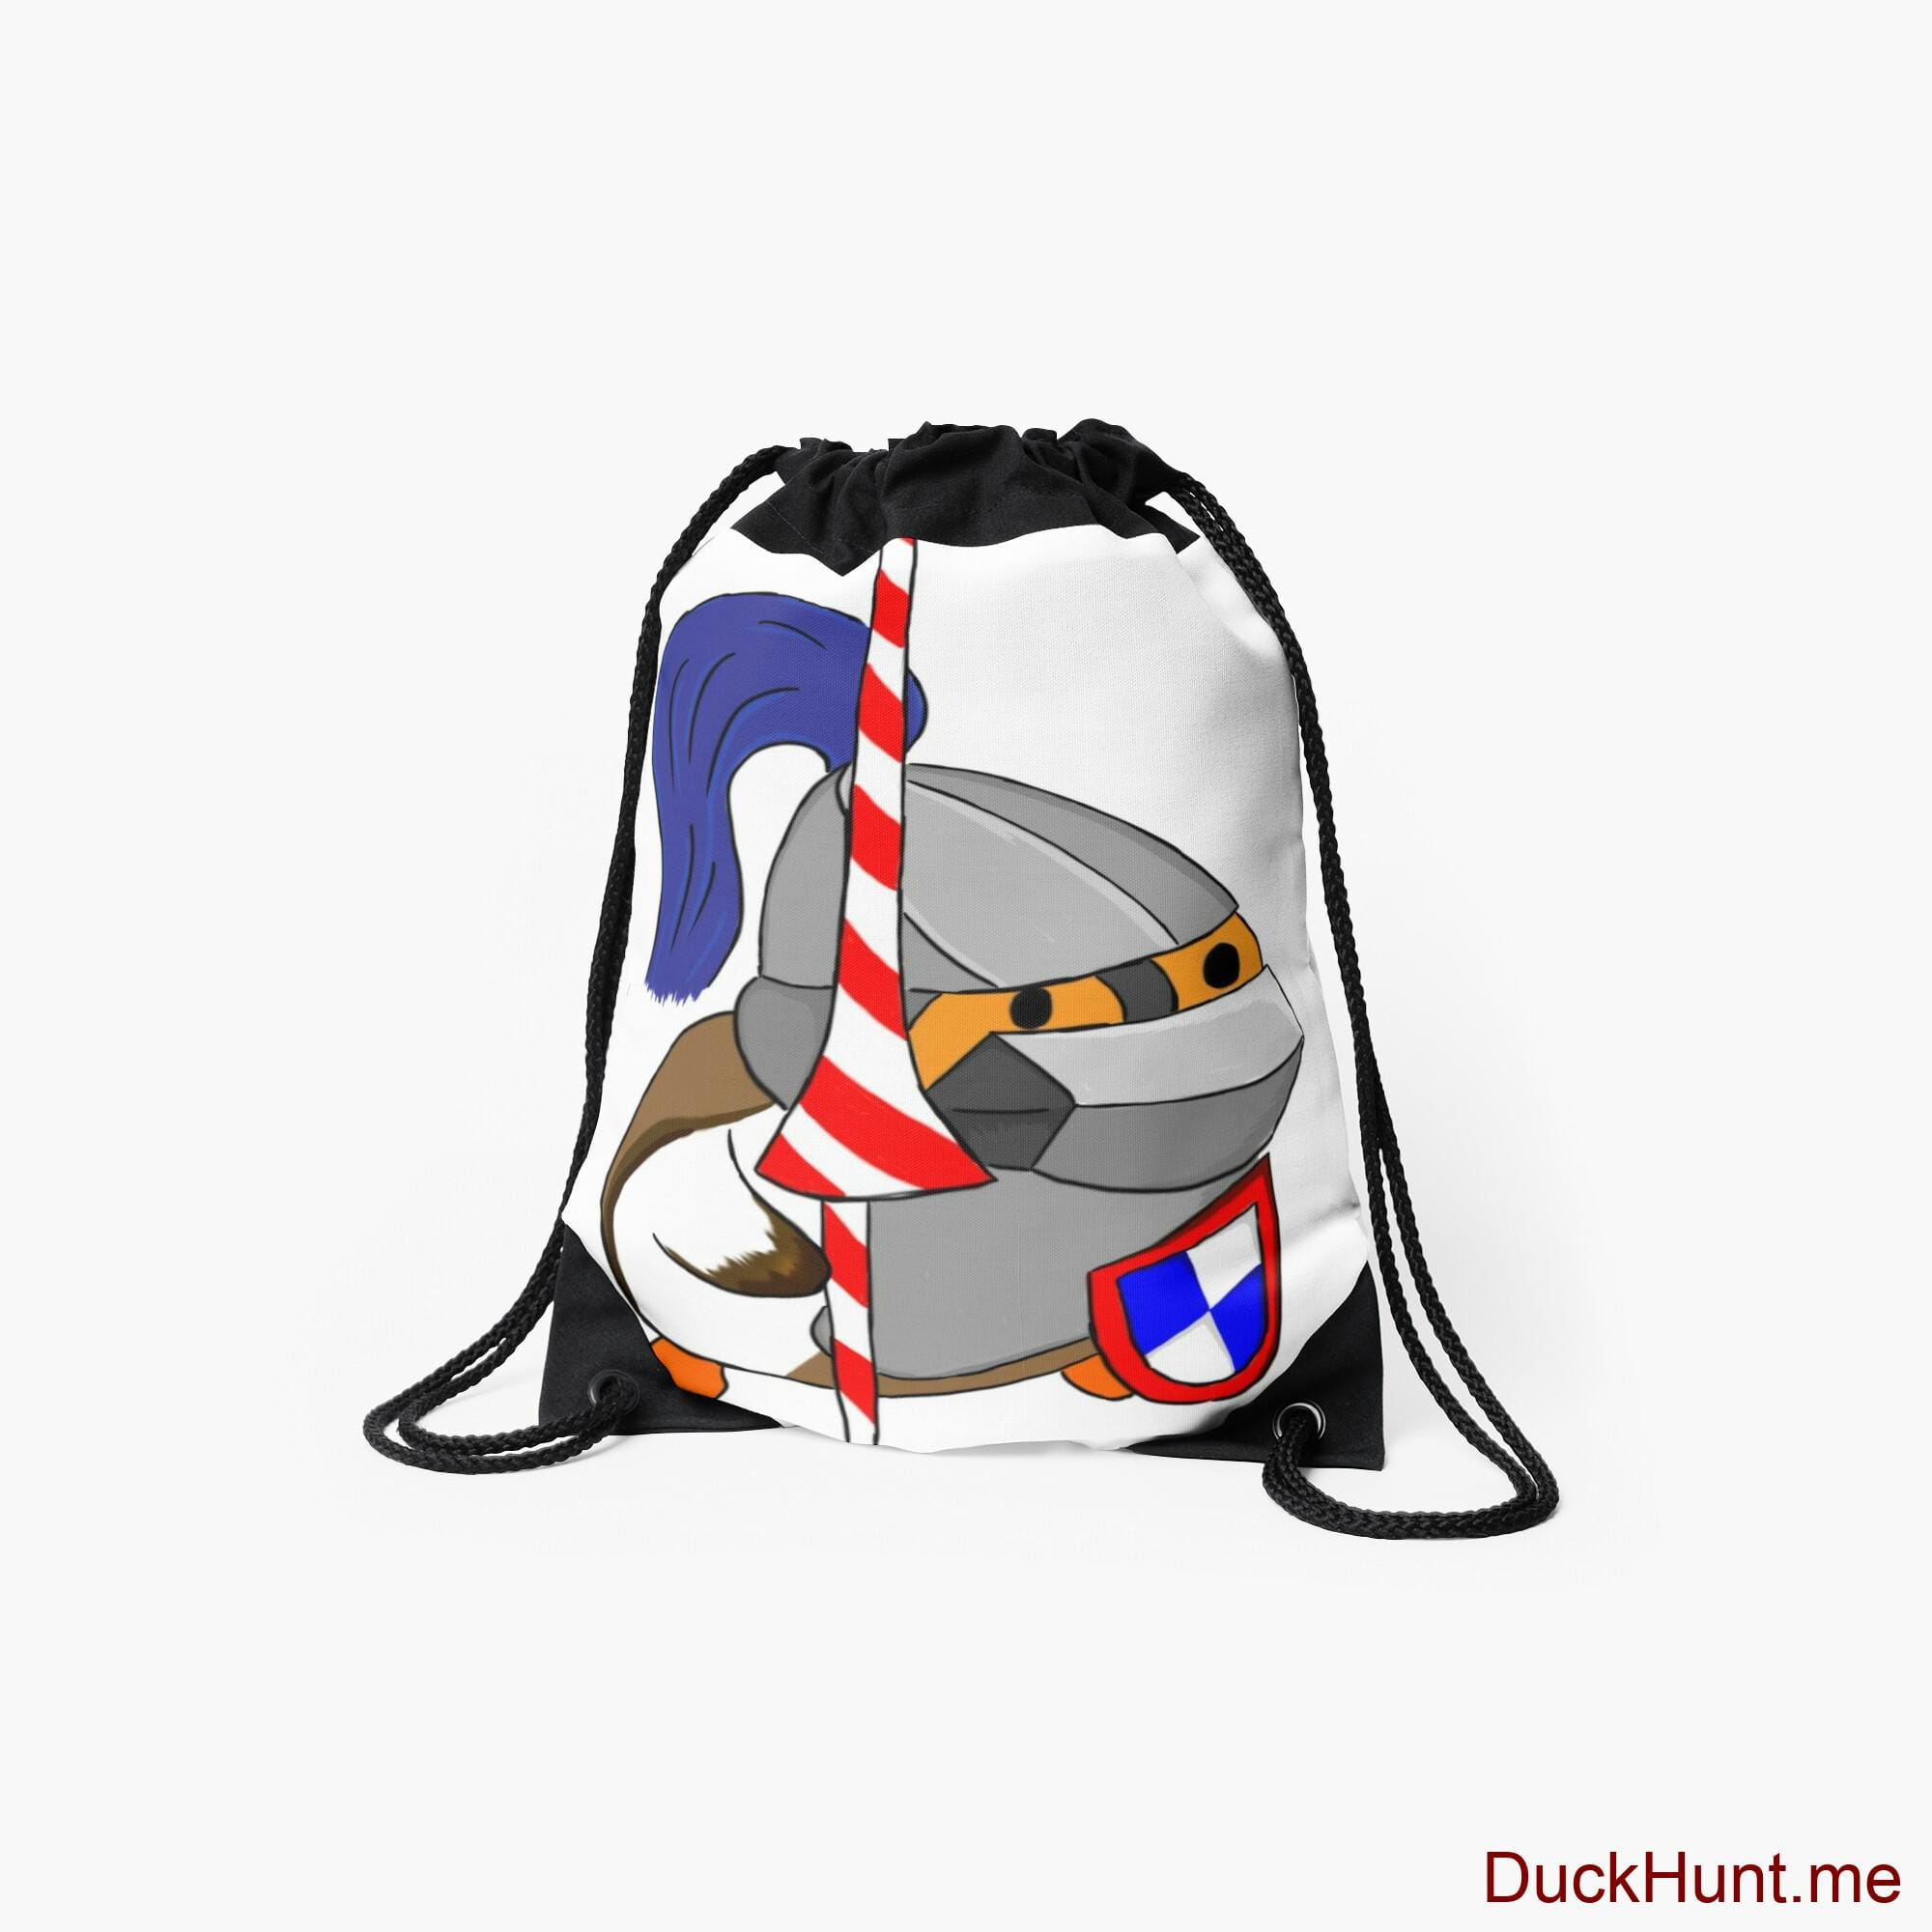 Armored Duck Drawstring Bag